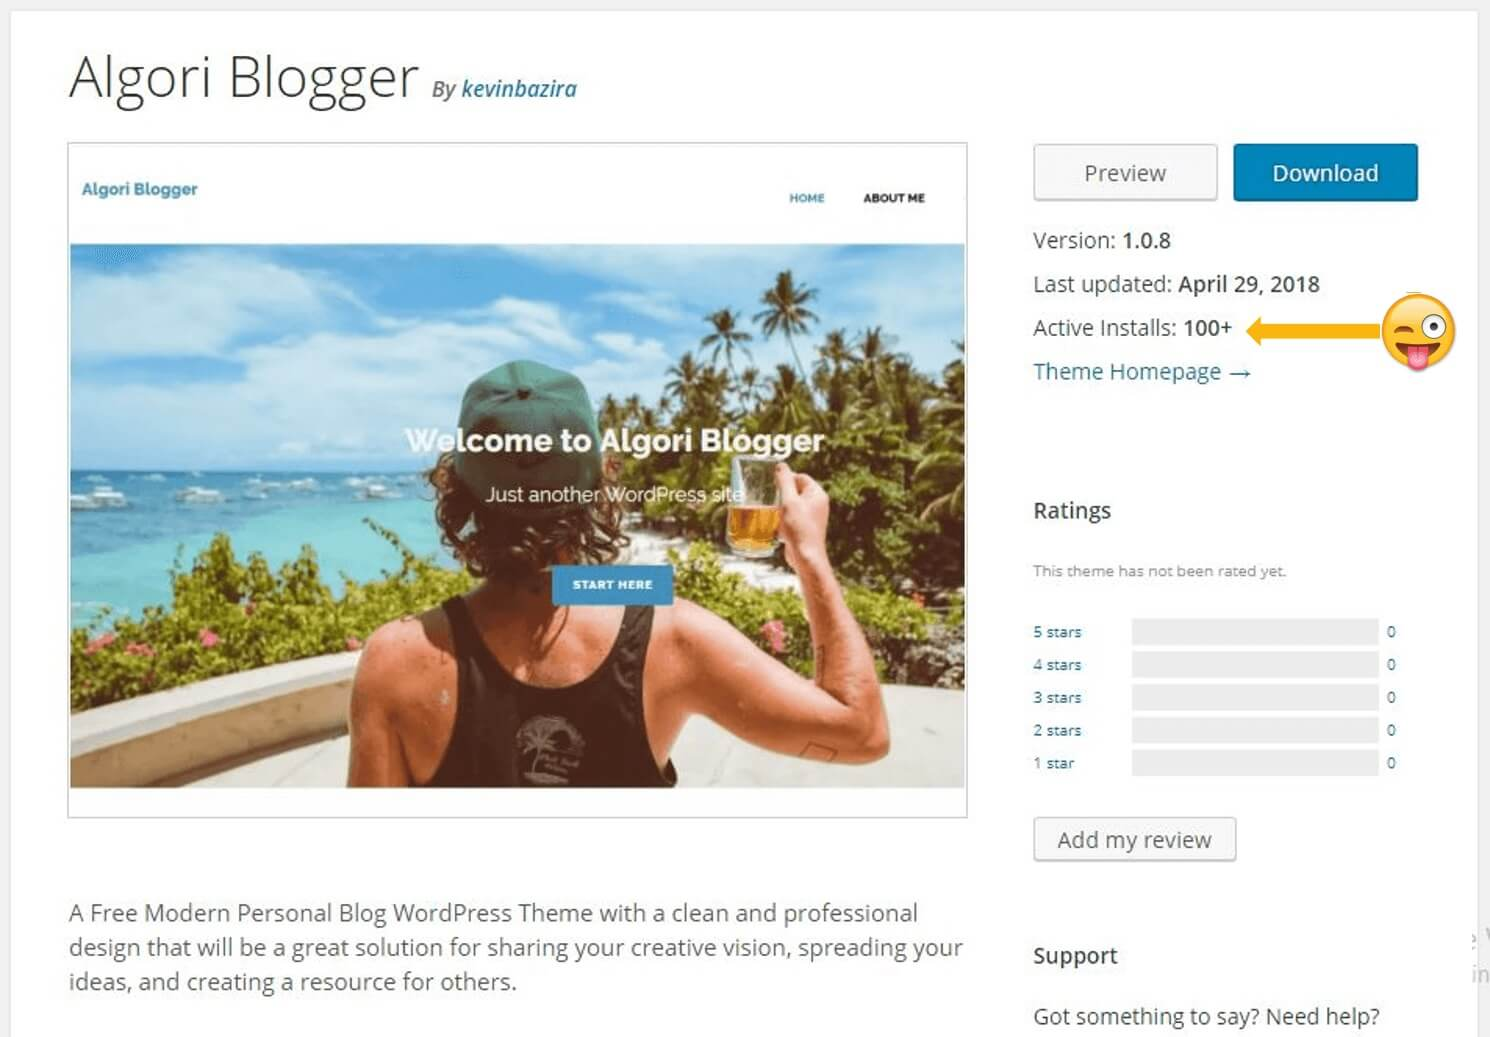 Algori Blogger Page Live in WP Theme Directory